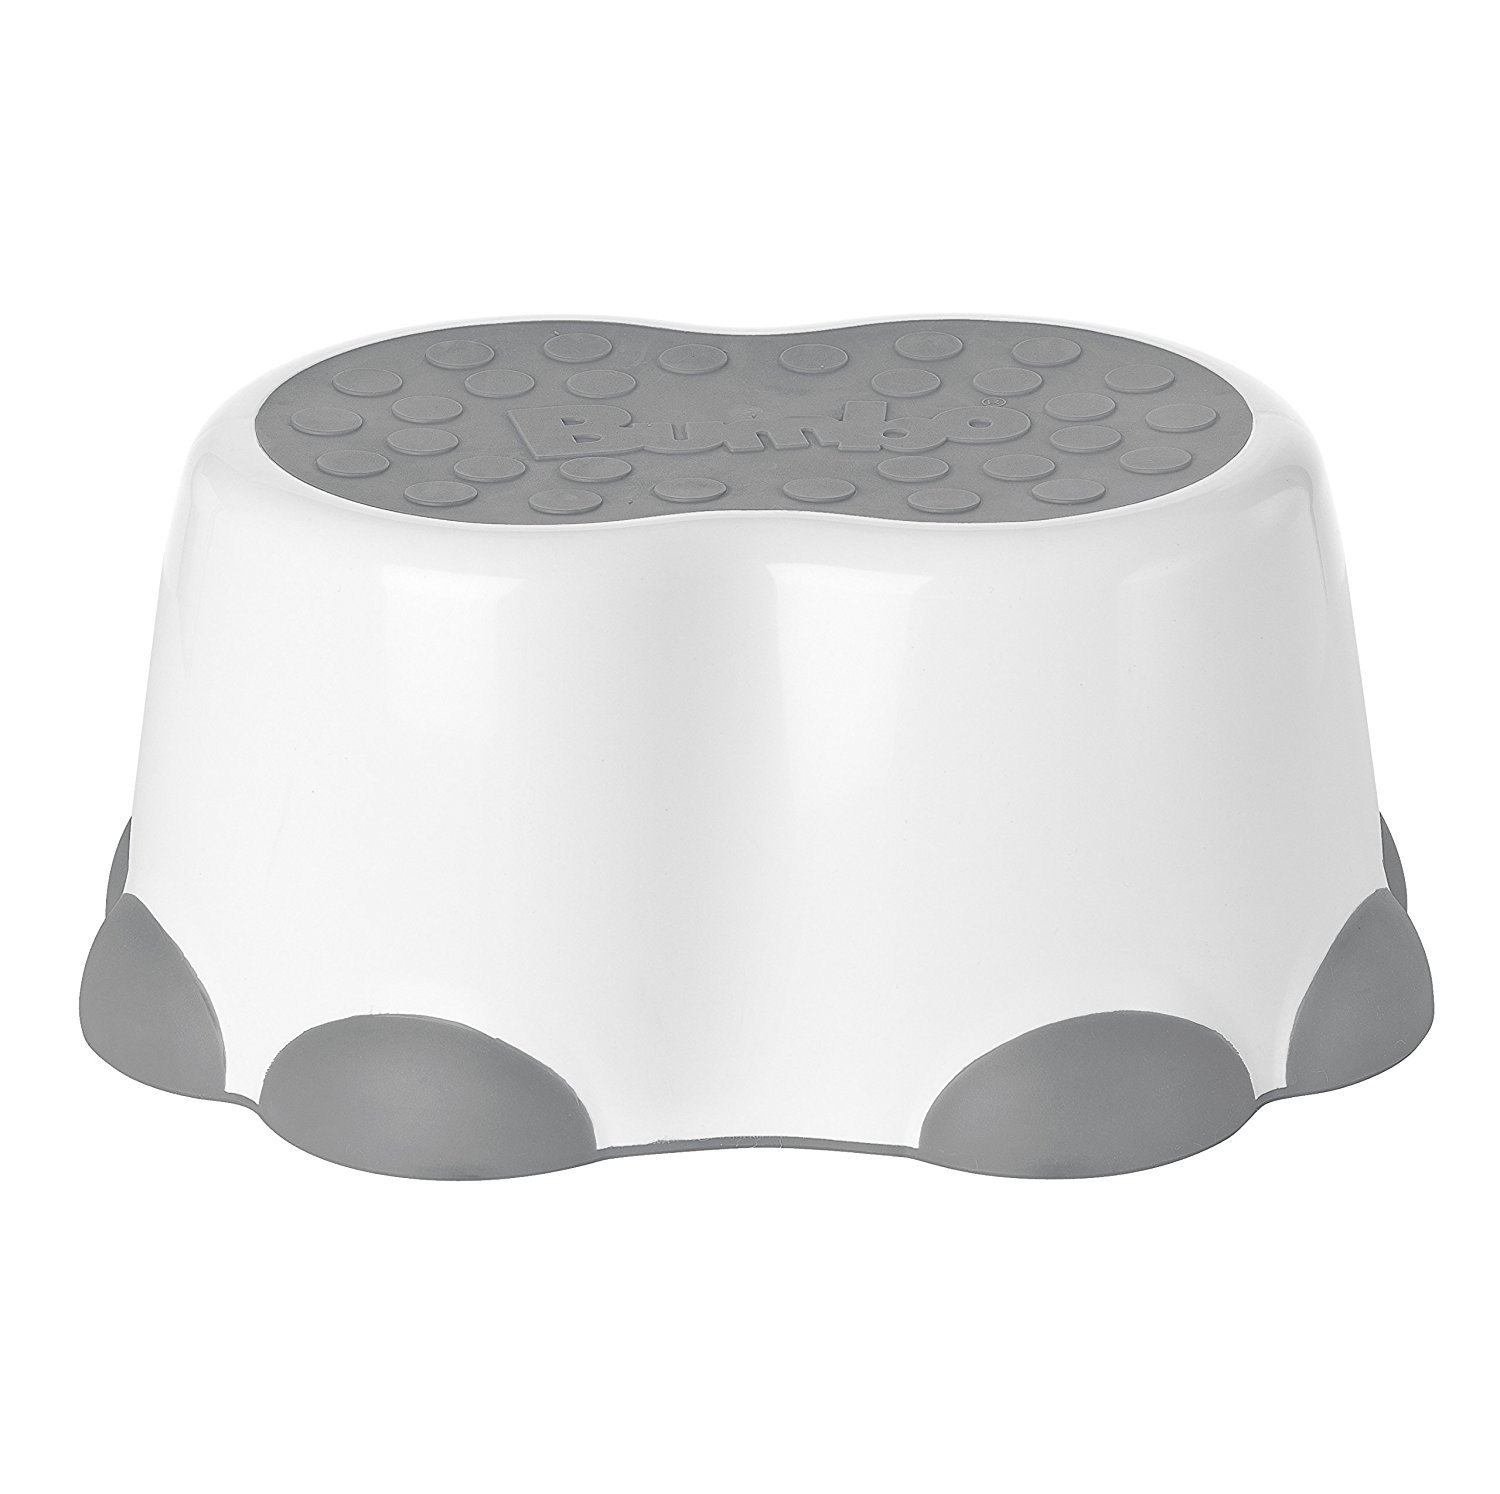 Step Stool, Cool Grey, White, Helps Toddlers Reach The Sink By Bumbo